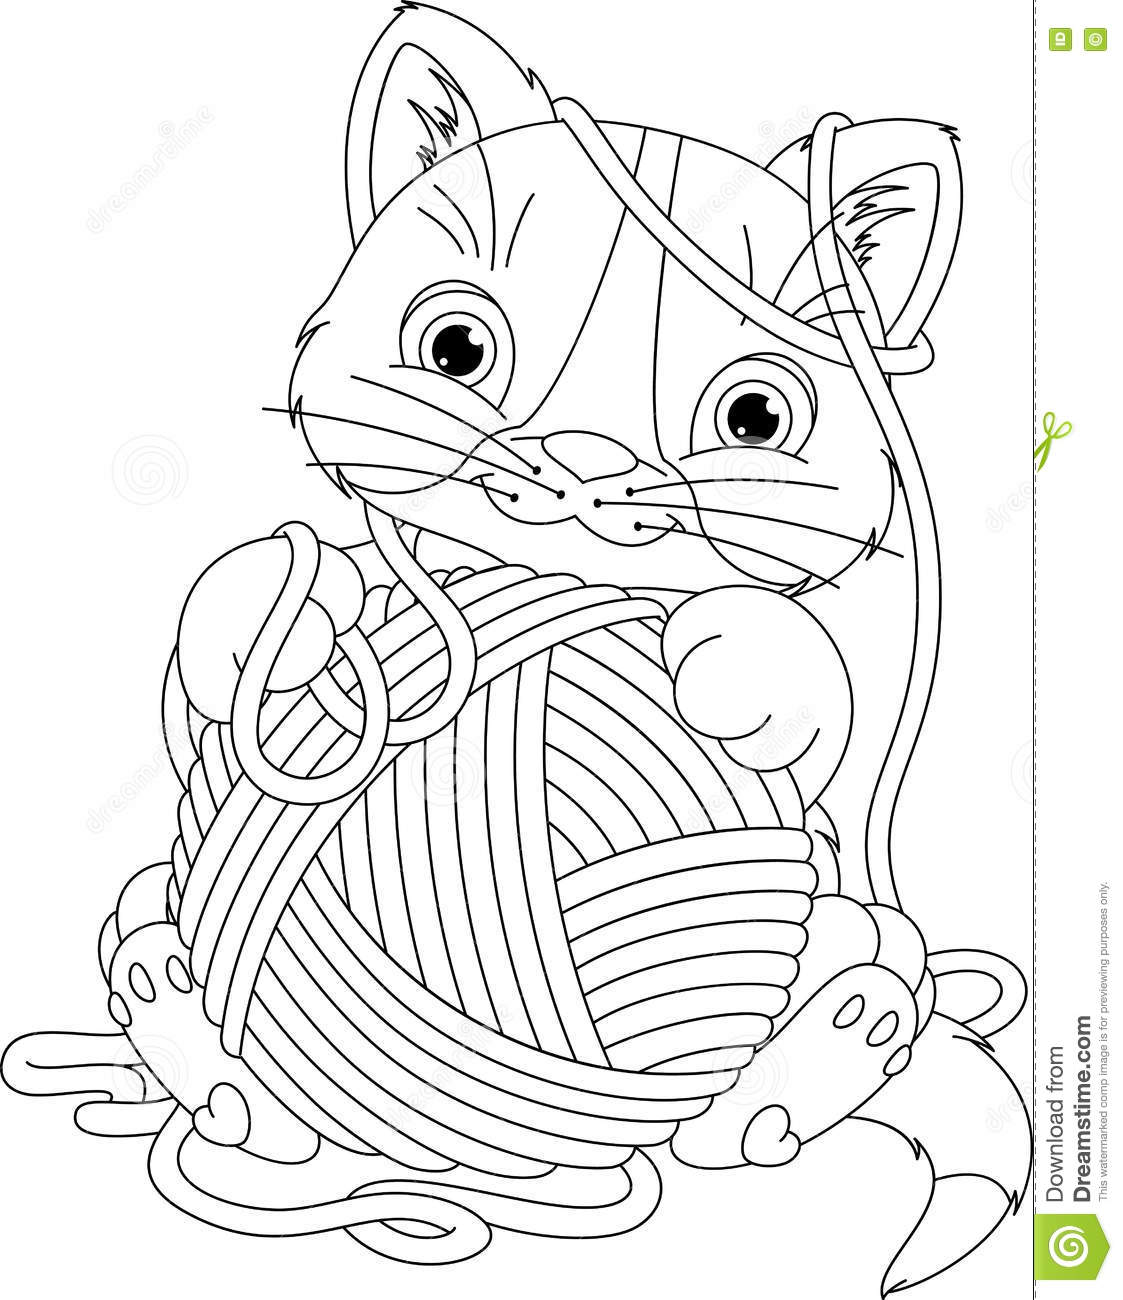 yarn coloring pages - 716×900